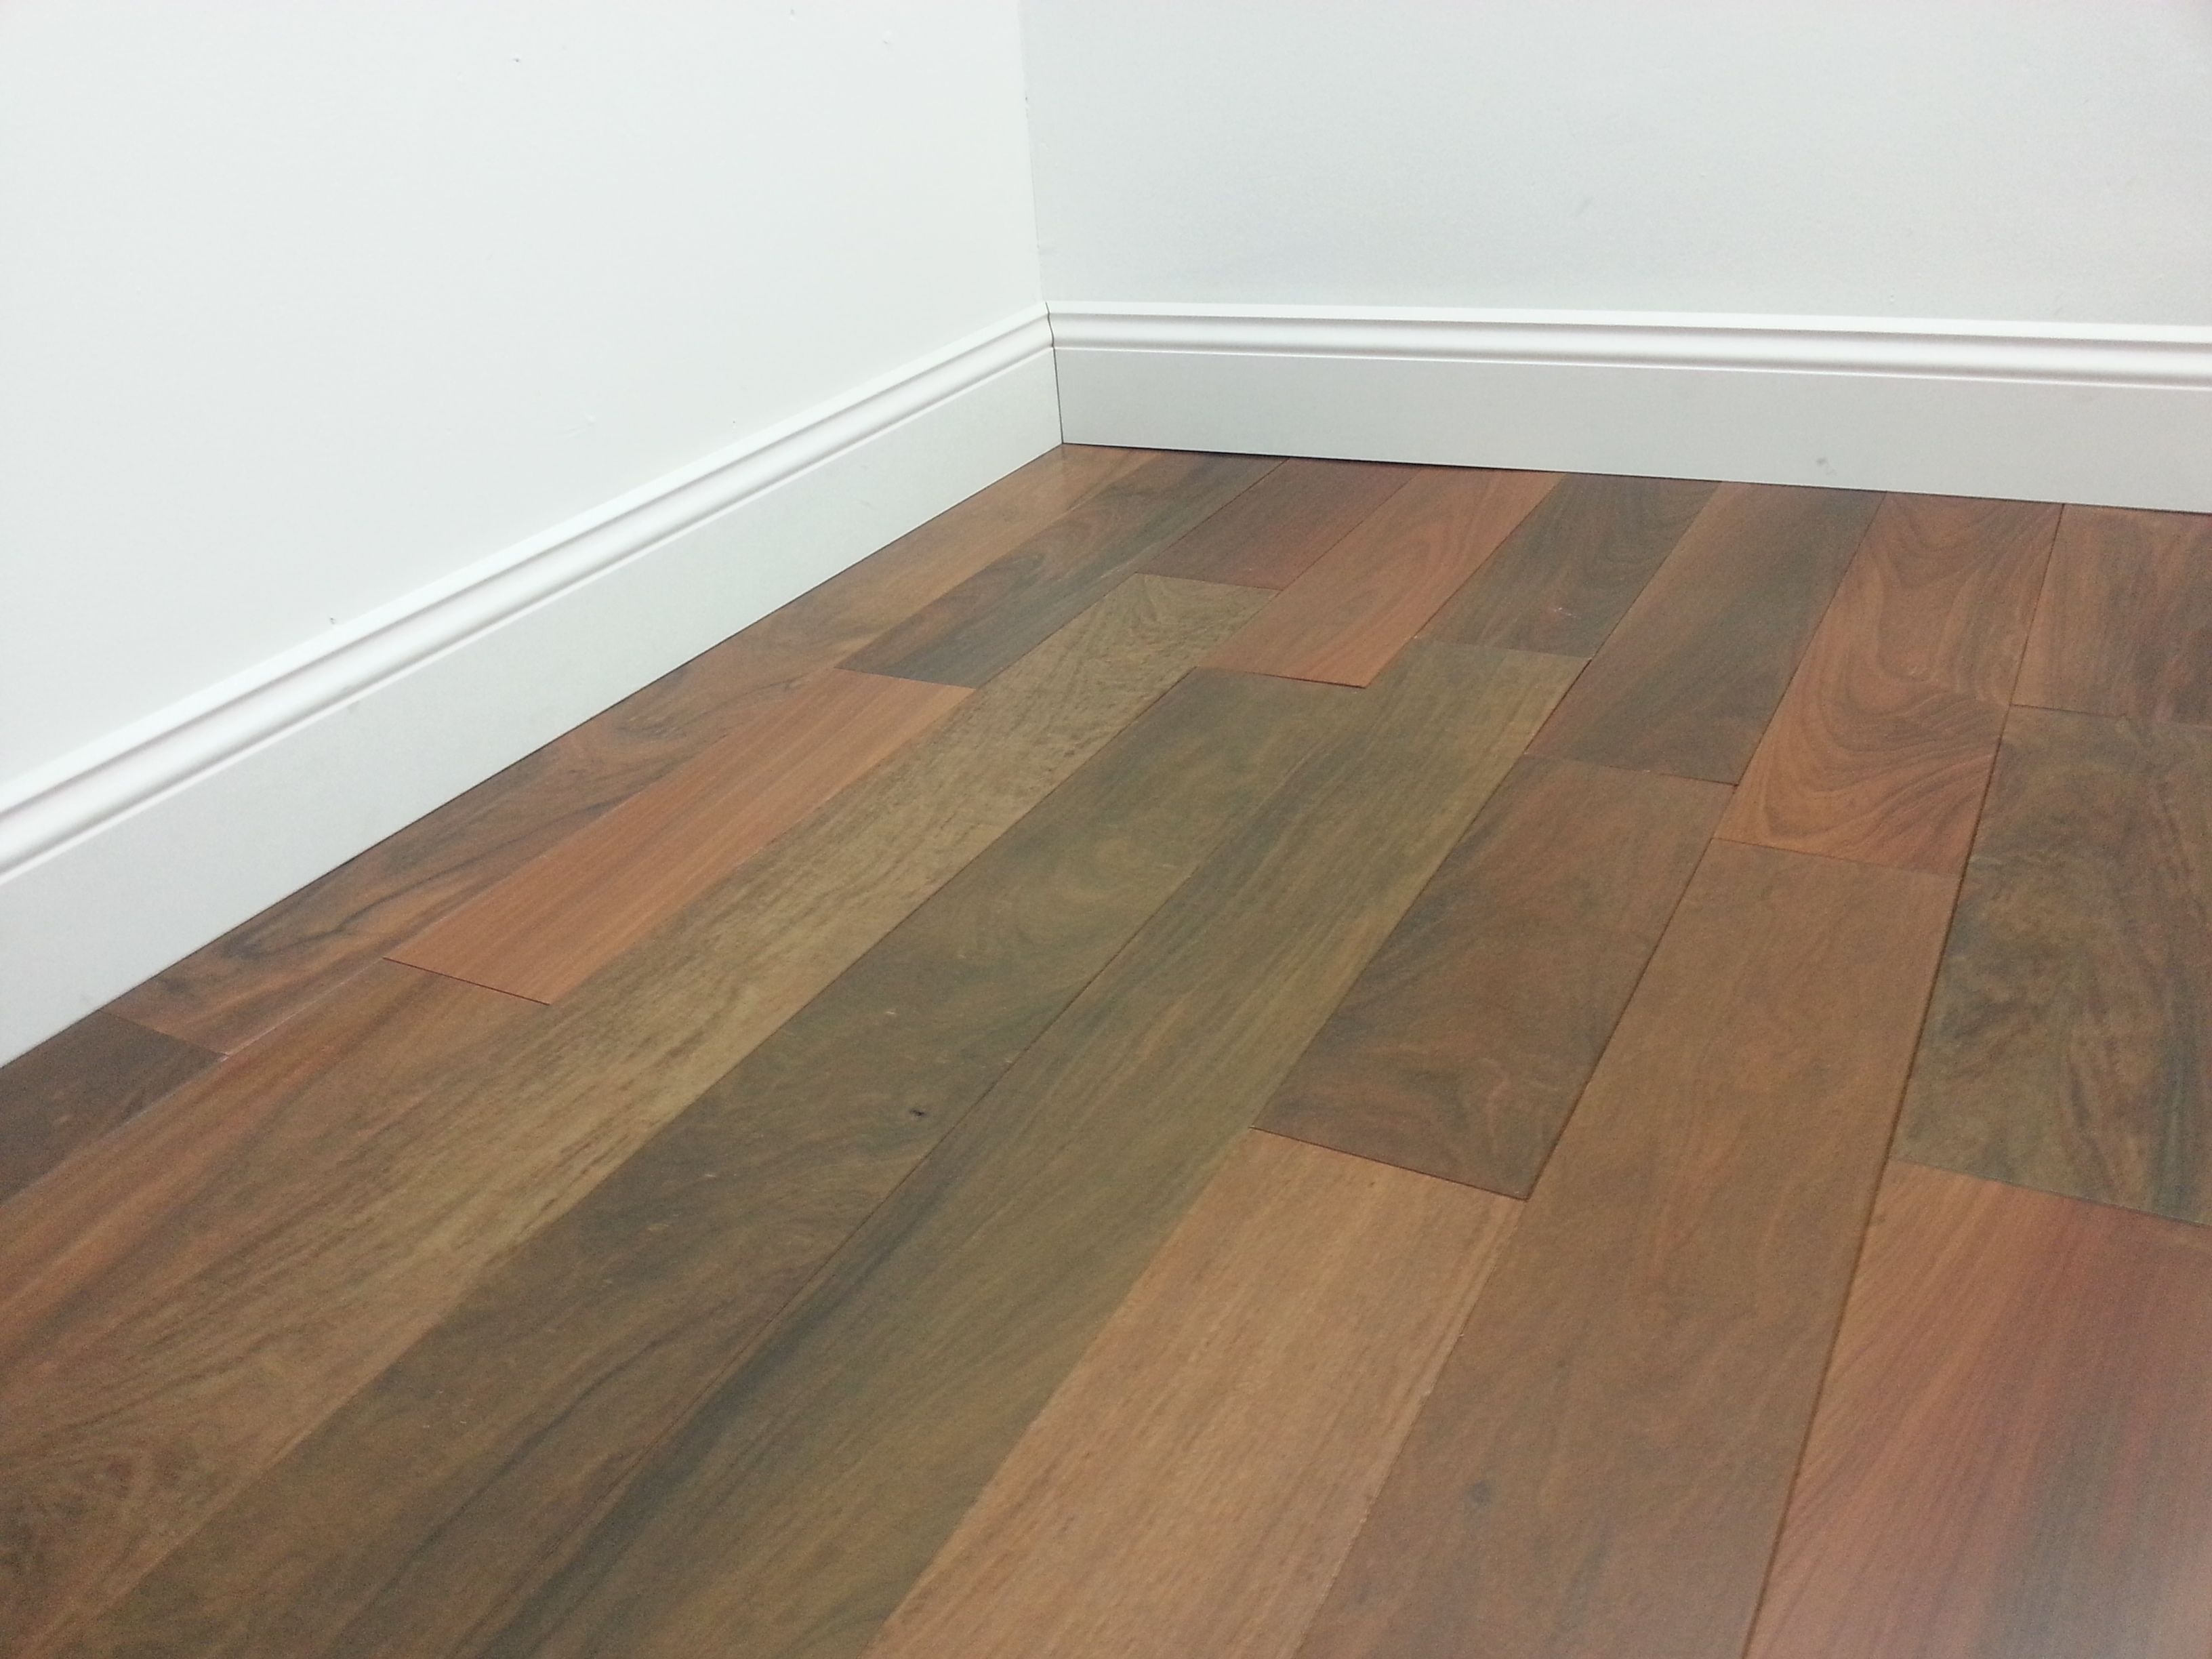 2 1 4 brazilian walnut pre finished solid hardwood for Hardwood flooring prefinished vs unfinished